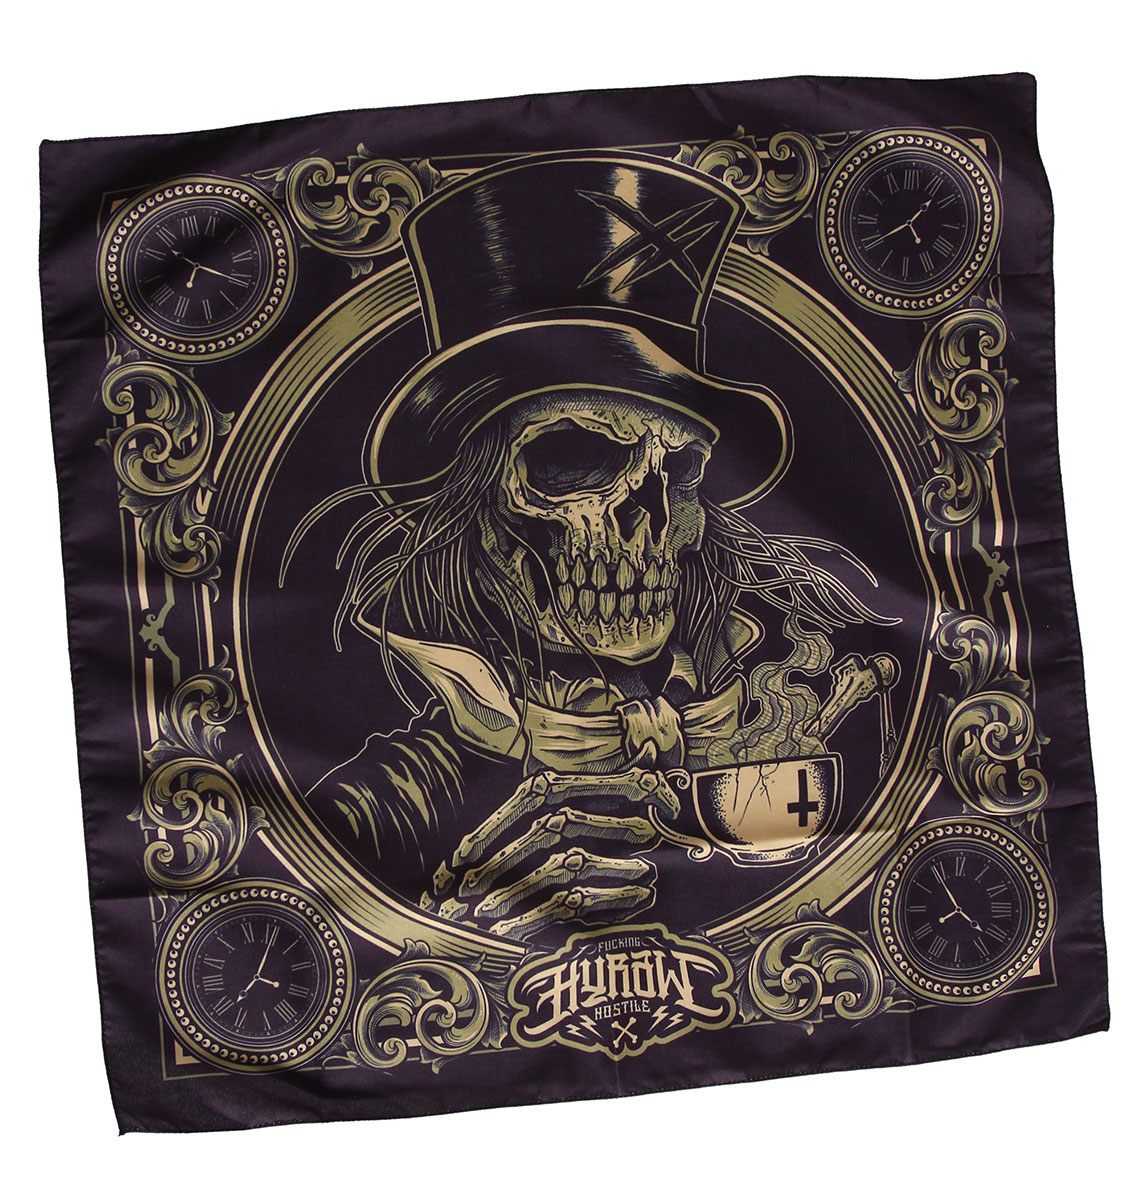 BANDANA DEATH AWAITS